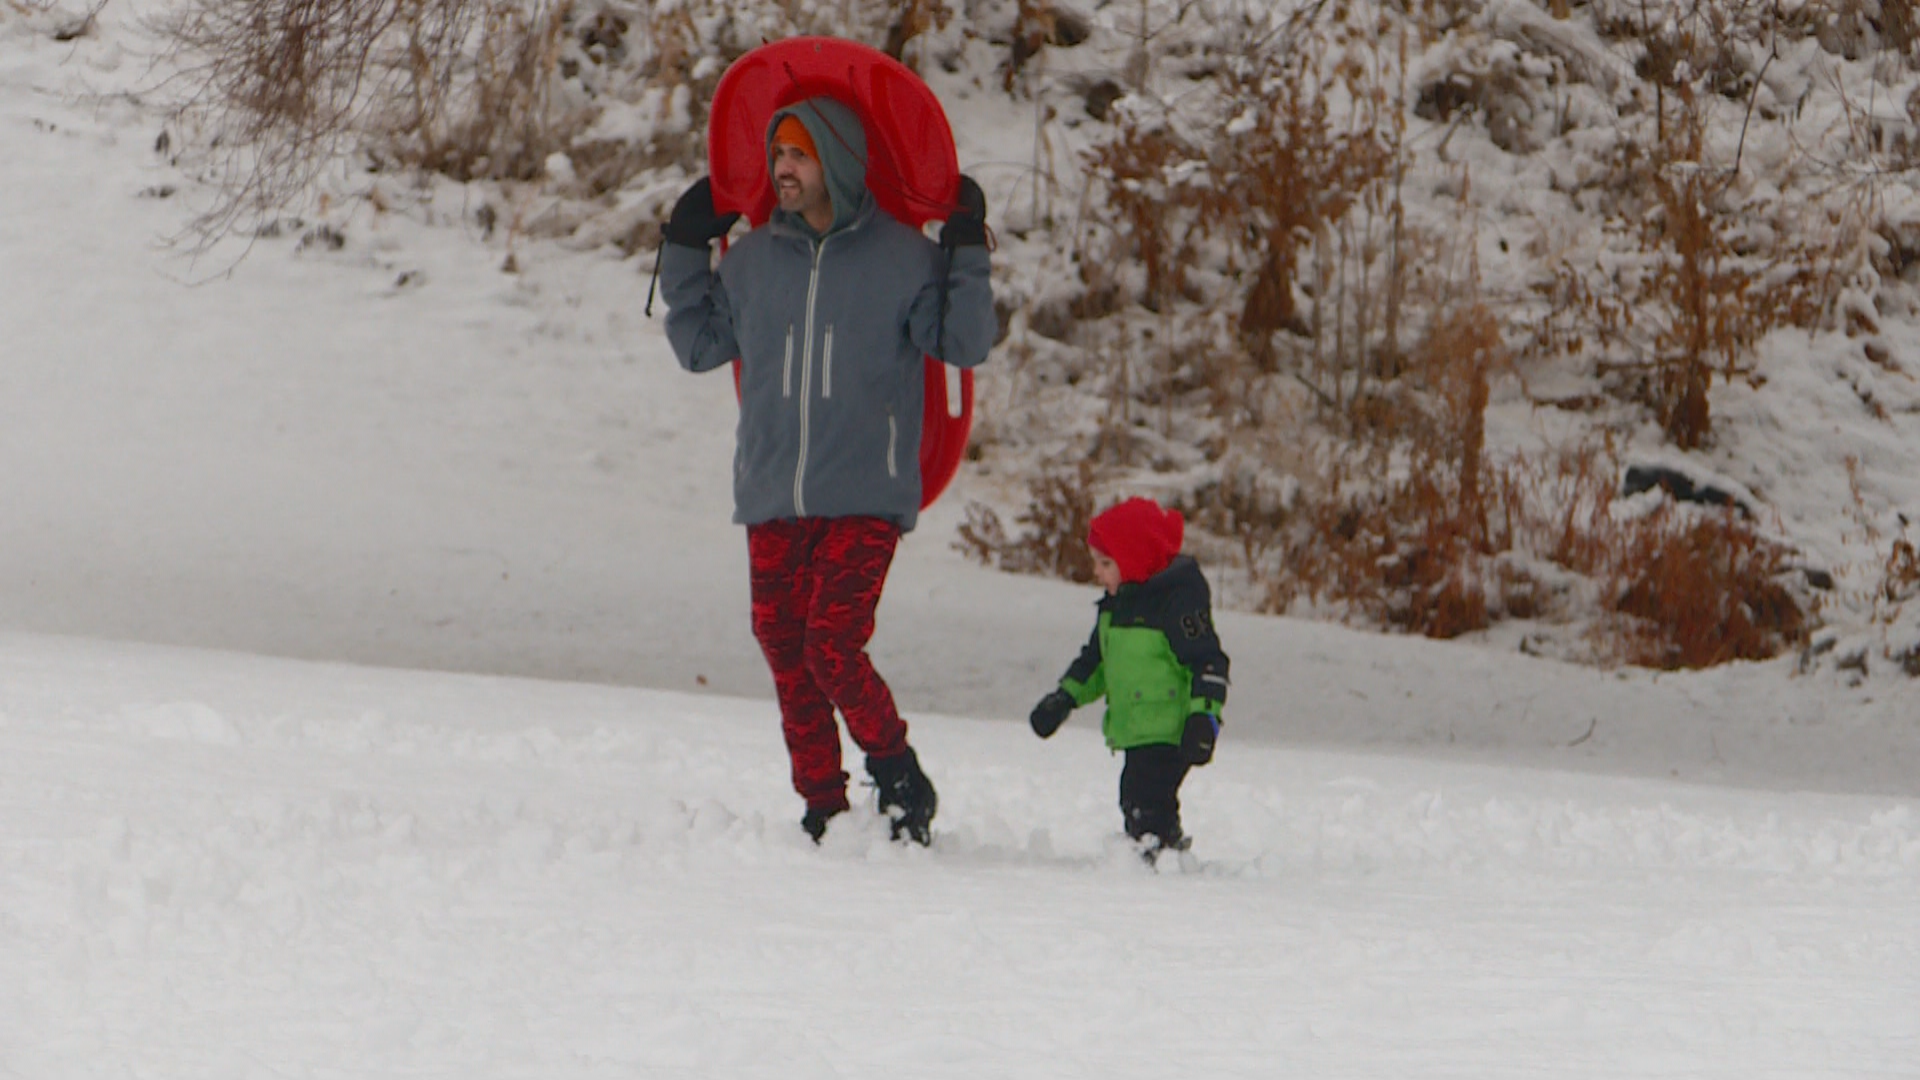 Kids at Sugarhouse Park embrace the Thanksgiving snow. (Photo: Ginna Roe, KUTV)